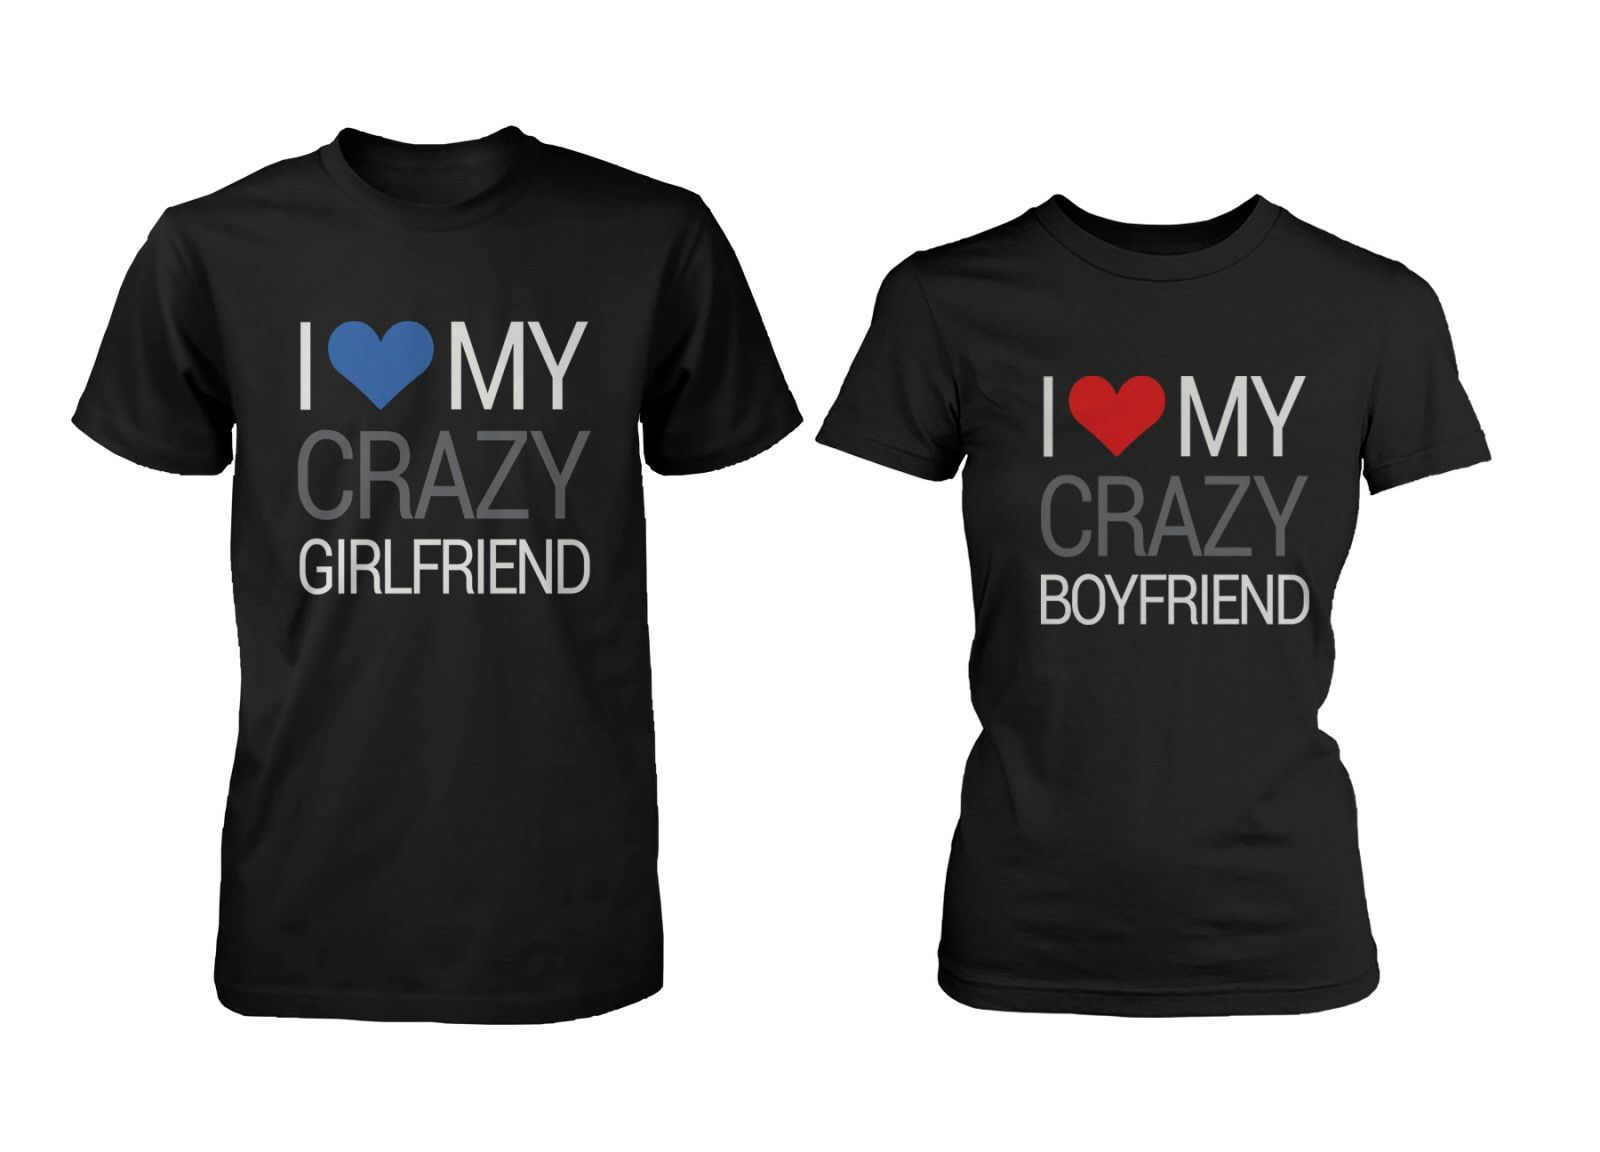 c65107bd9d His and Hers Matching Couple T-shirts I Love My Crazy Boyfriend and ...